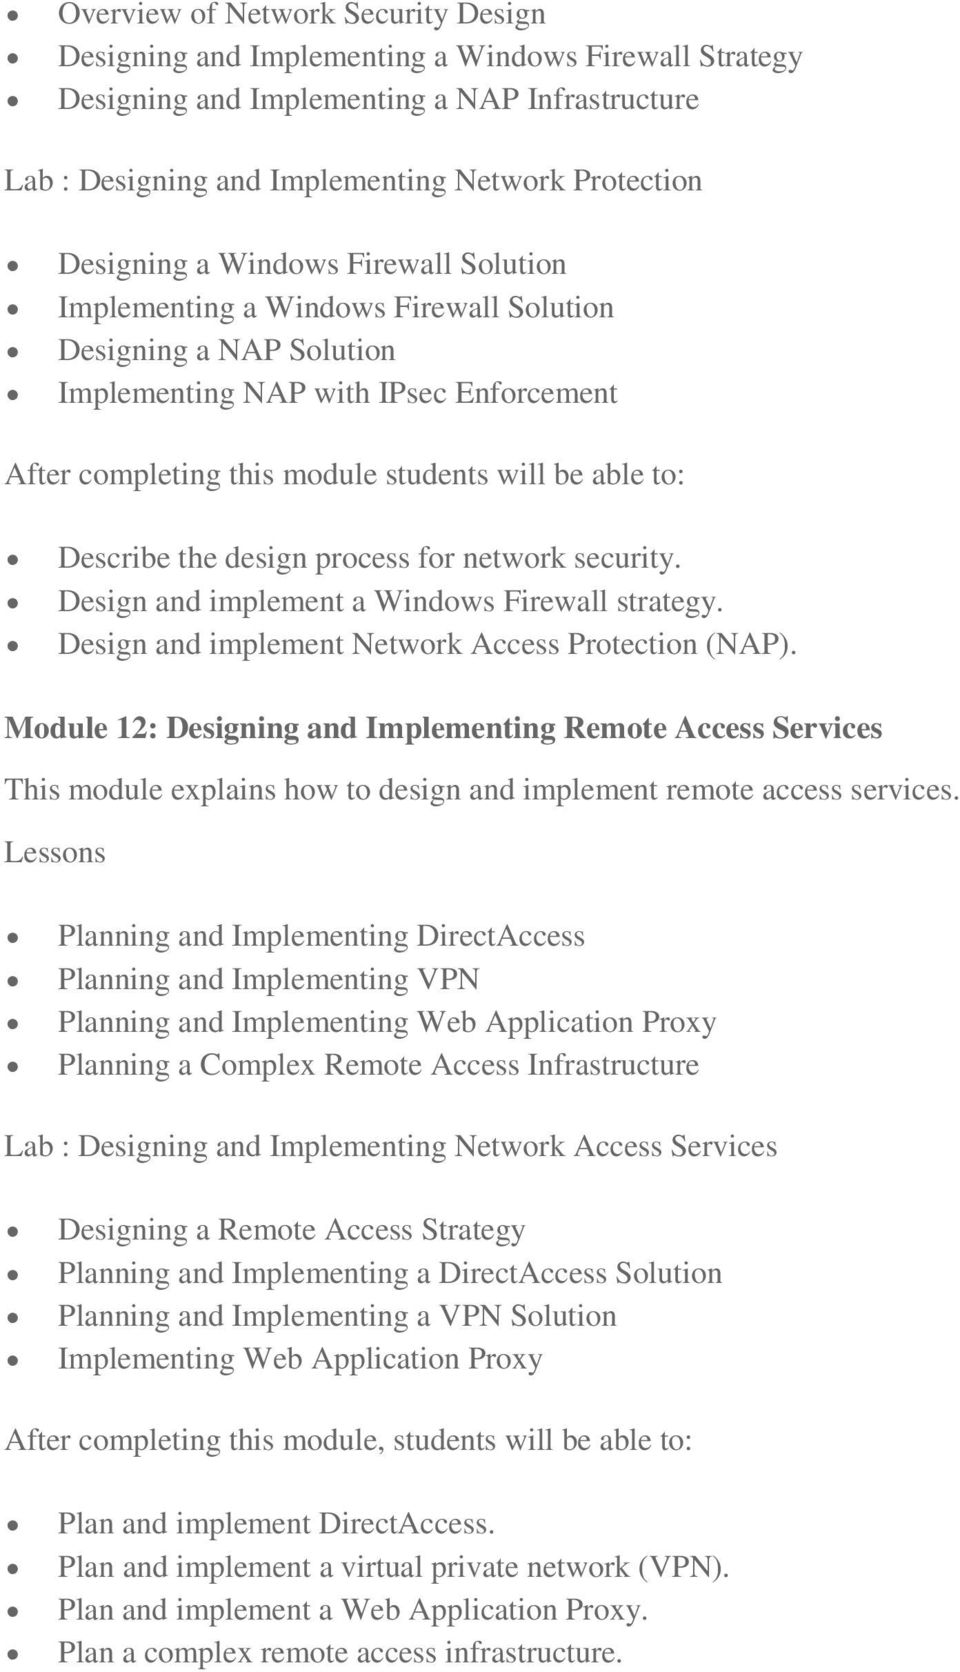 Describe the design process for network security. Design and implement a Windows Firewall strategy. Design and implement Network Access Protection (NAP).